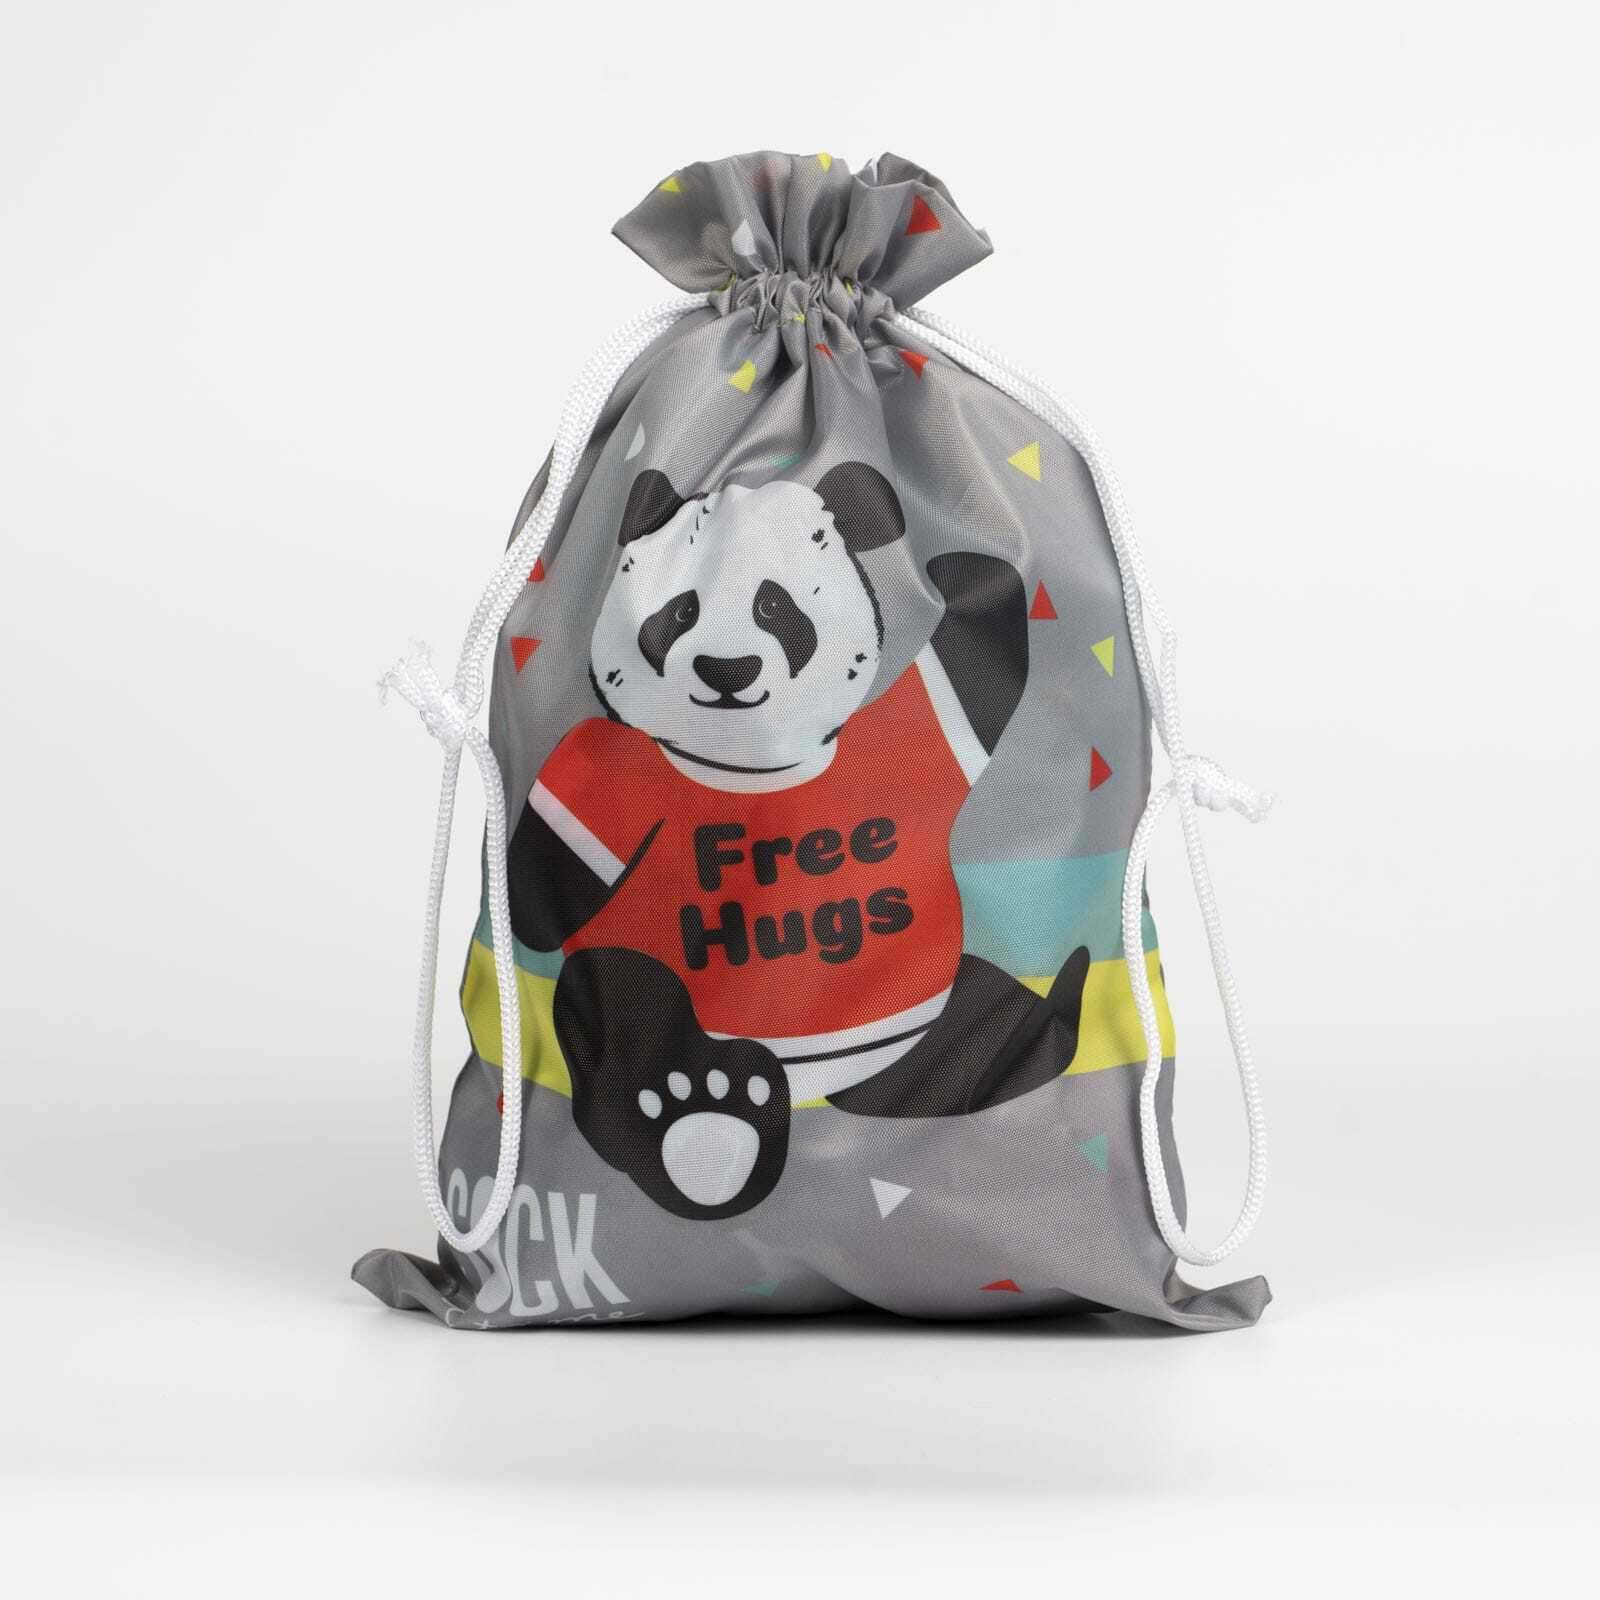 Panda Bear Hug - Cute Animal Grey Gift Bag - Sock It to Me in Grey